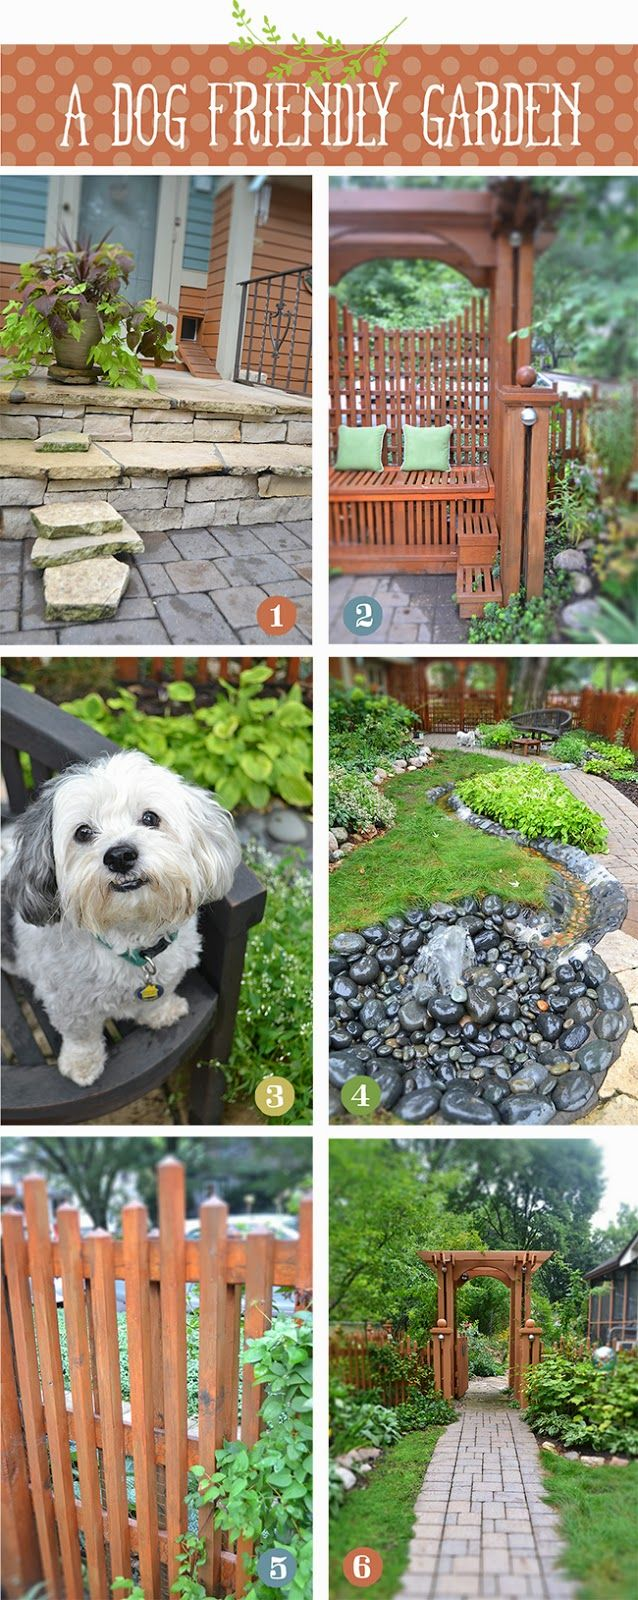 i dont own a dog but this garden made me think it could - Garden Ideas For Dogs